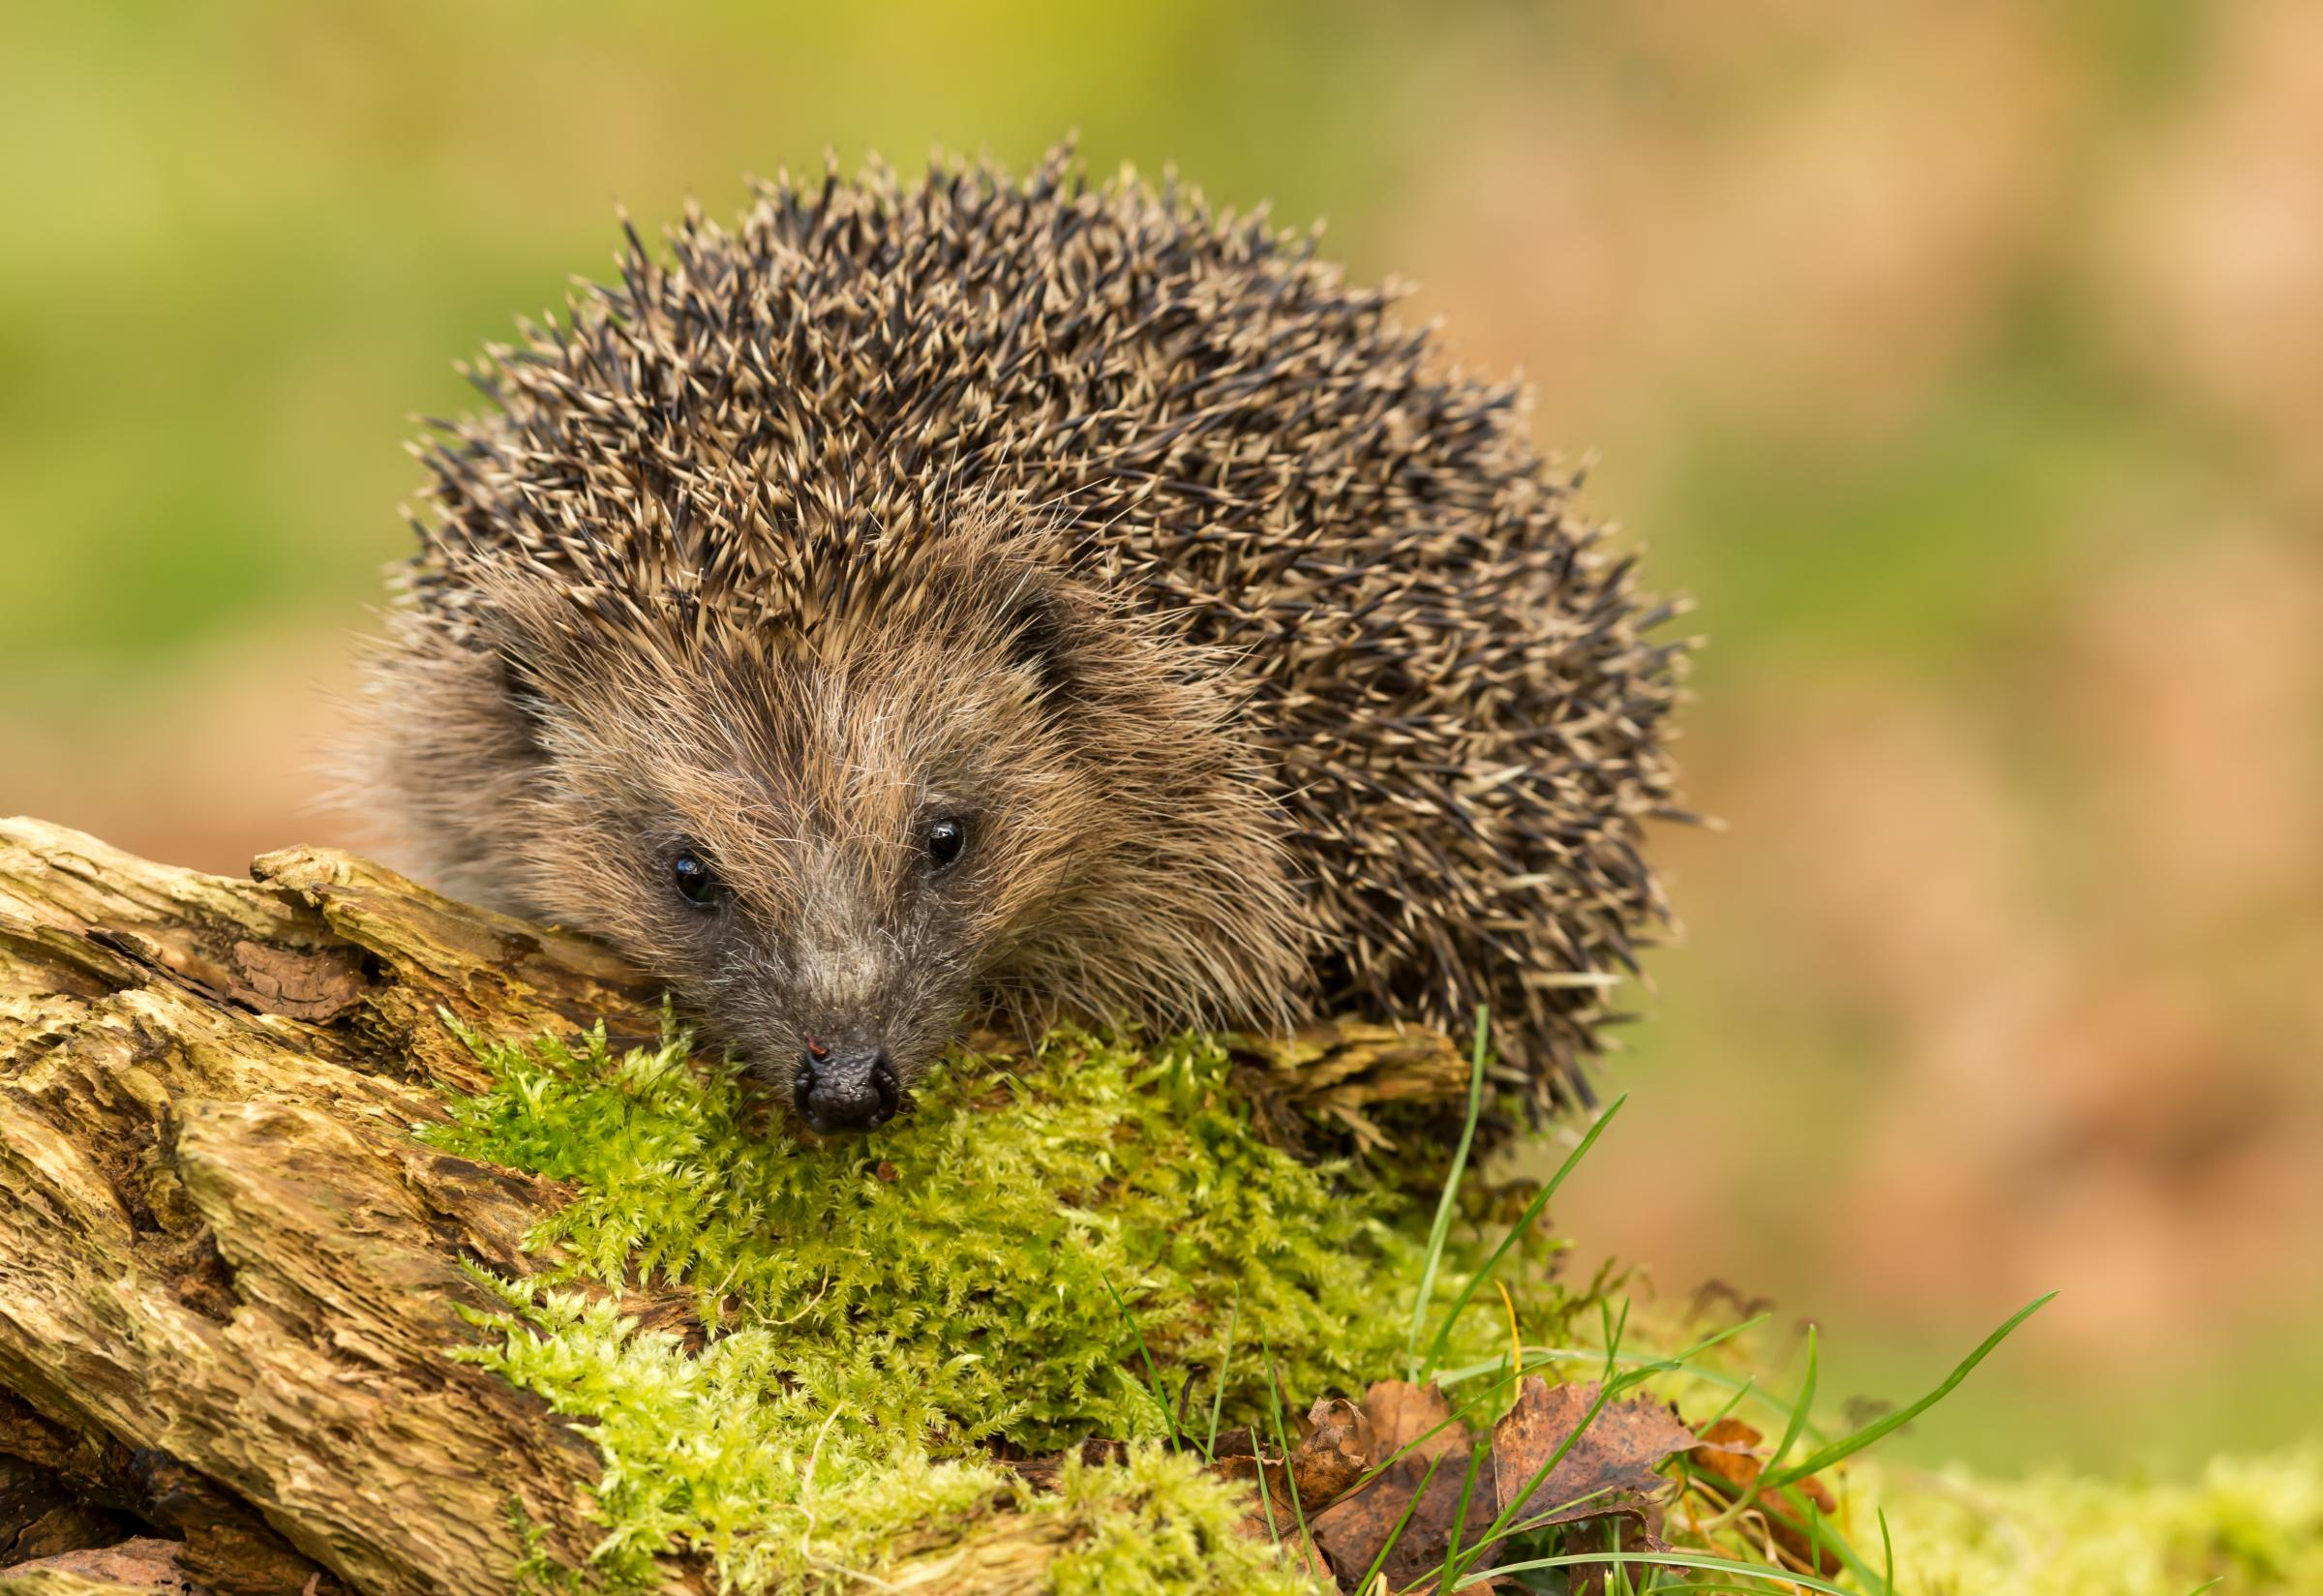 Hedgehog's have been spotted by conservationists monitoring threatened wildlife at Chester Zoo's new nature reserve